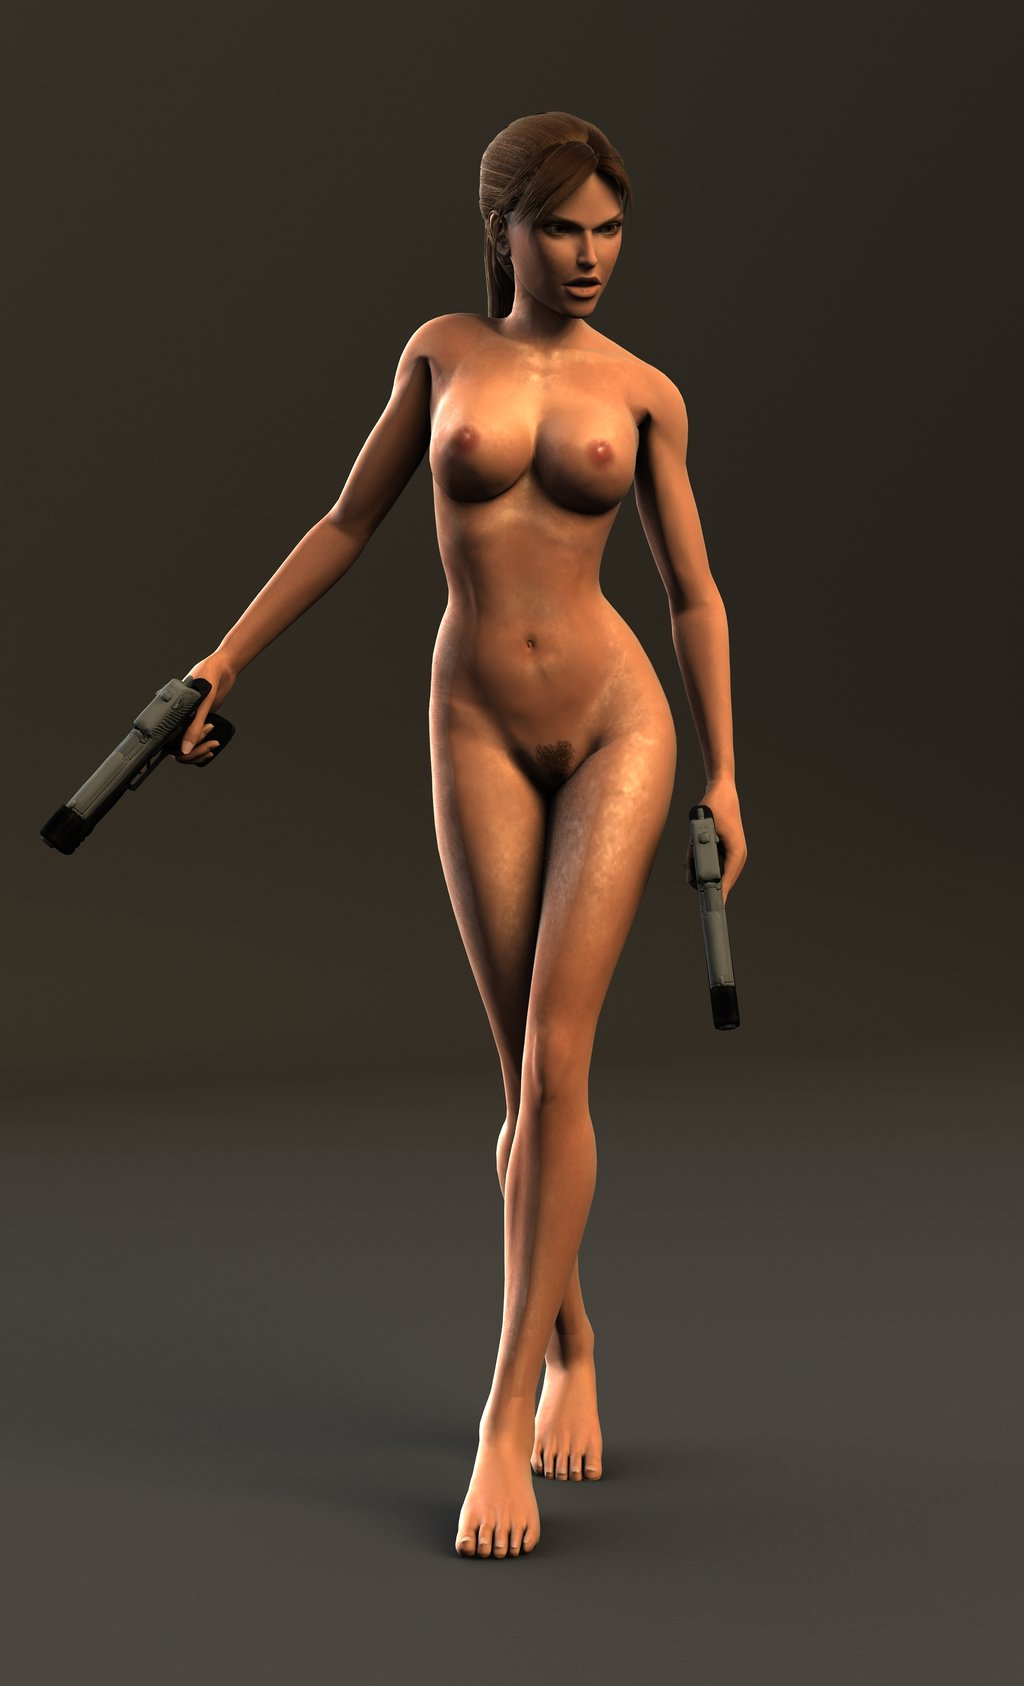 Lara croft legend amanda naked sex thumbs